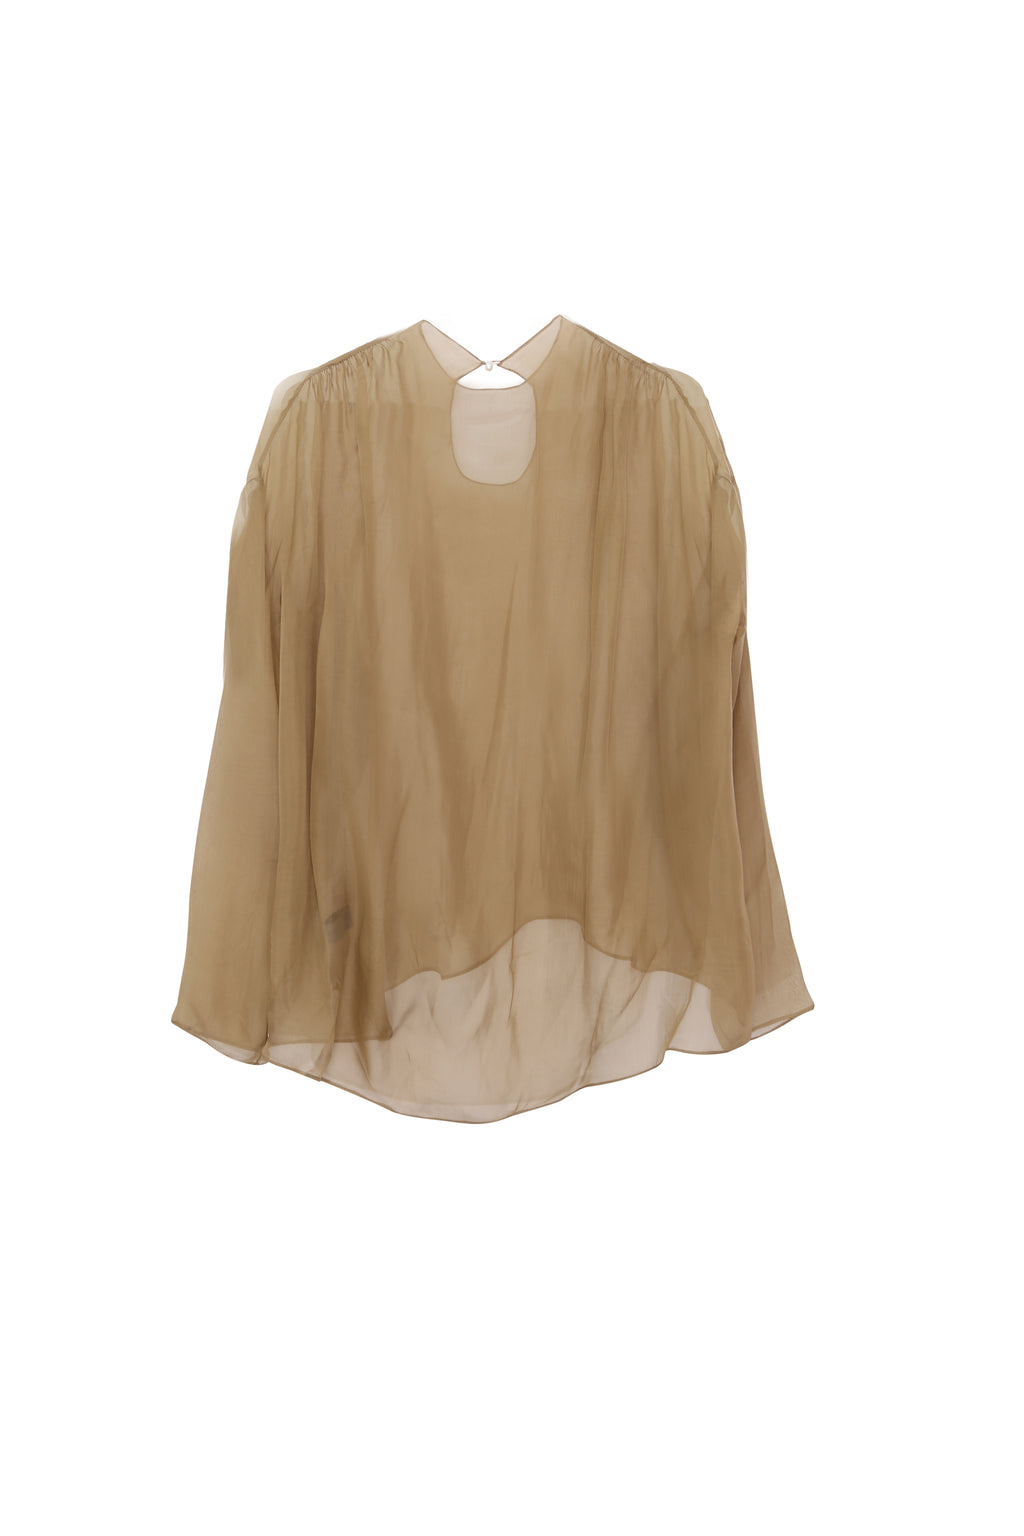 Silk blouse chiffon top